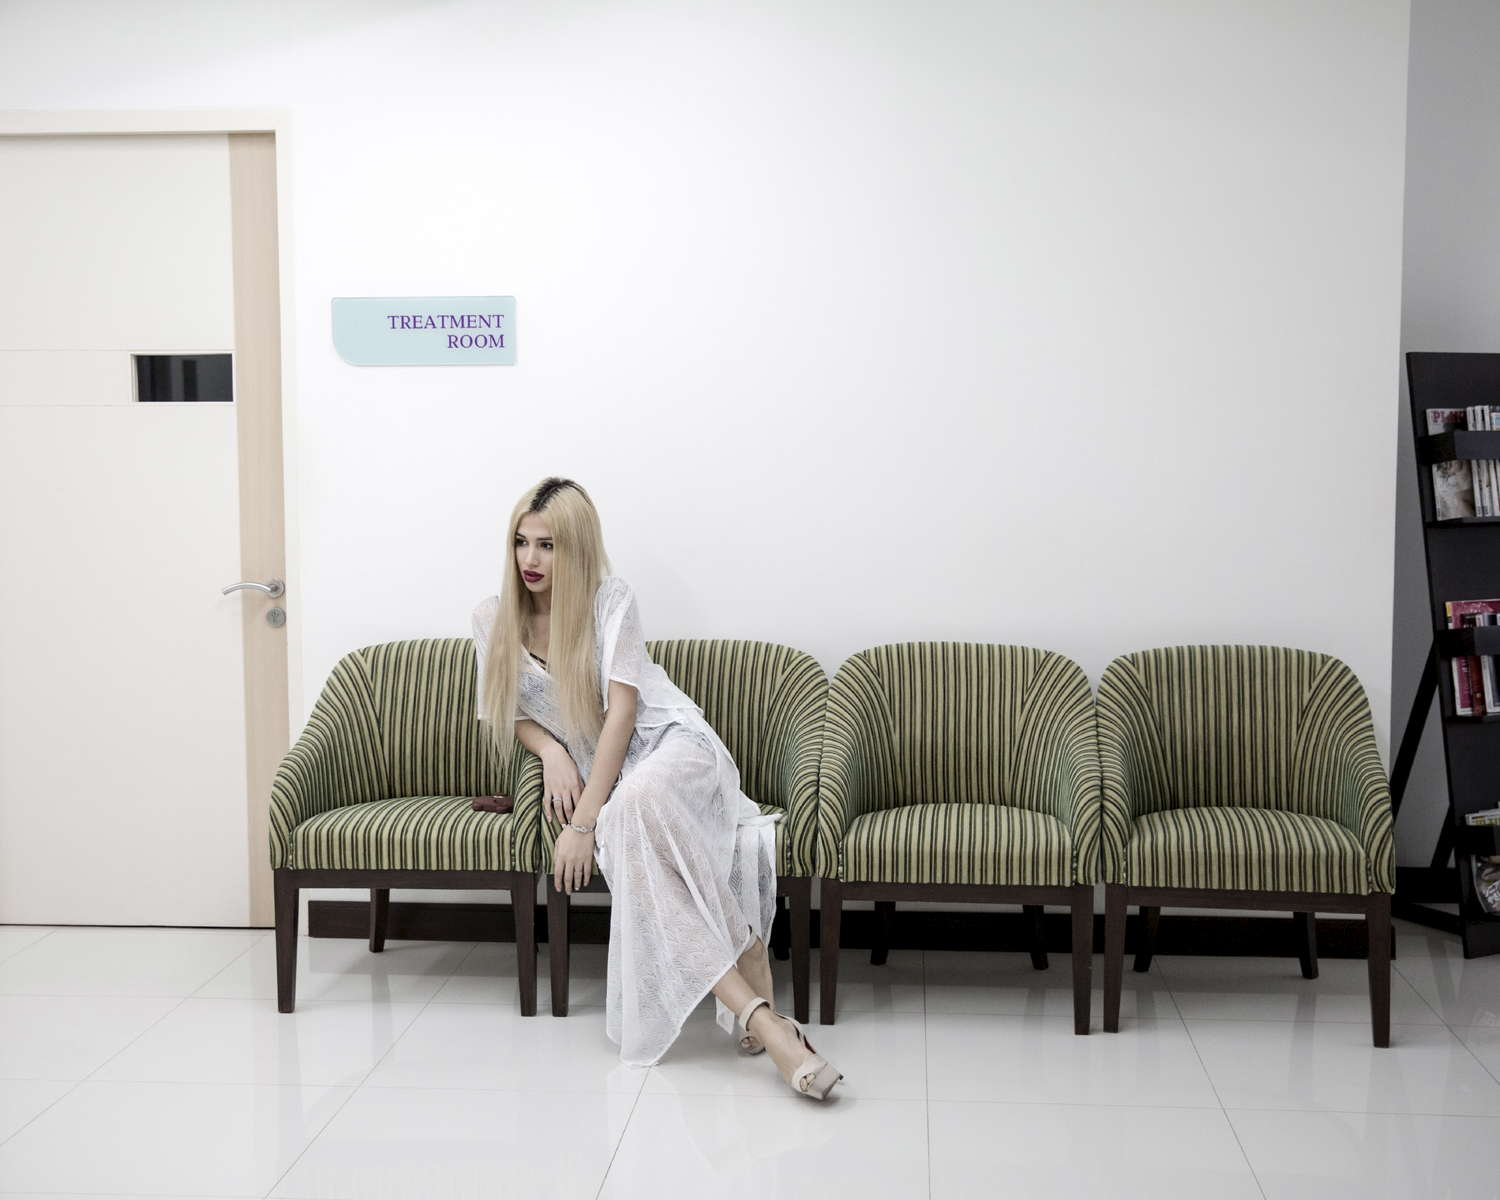 A russian patient of sex reassignment at Kamol Hospital on February 16th 2016 in Bangkok, Thailand. 22 year old Agnes Landau had her sex reassignment surgery at Kamol Hospital on January 20th. She comes from the muslim south of Moscow, Russia. Her mother is from the middle east and father from Russia. Agnes works as a proffesional model in Milan. This surgery fully completes her transition to a woman. © Giulio Di Sturco